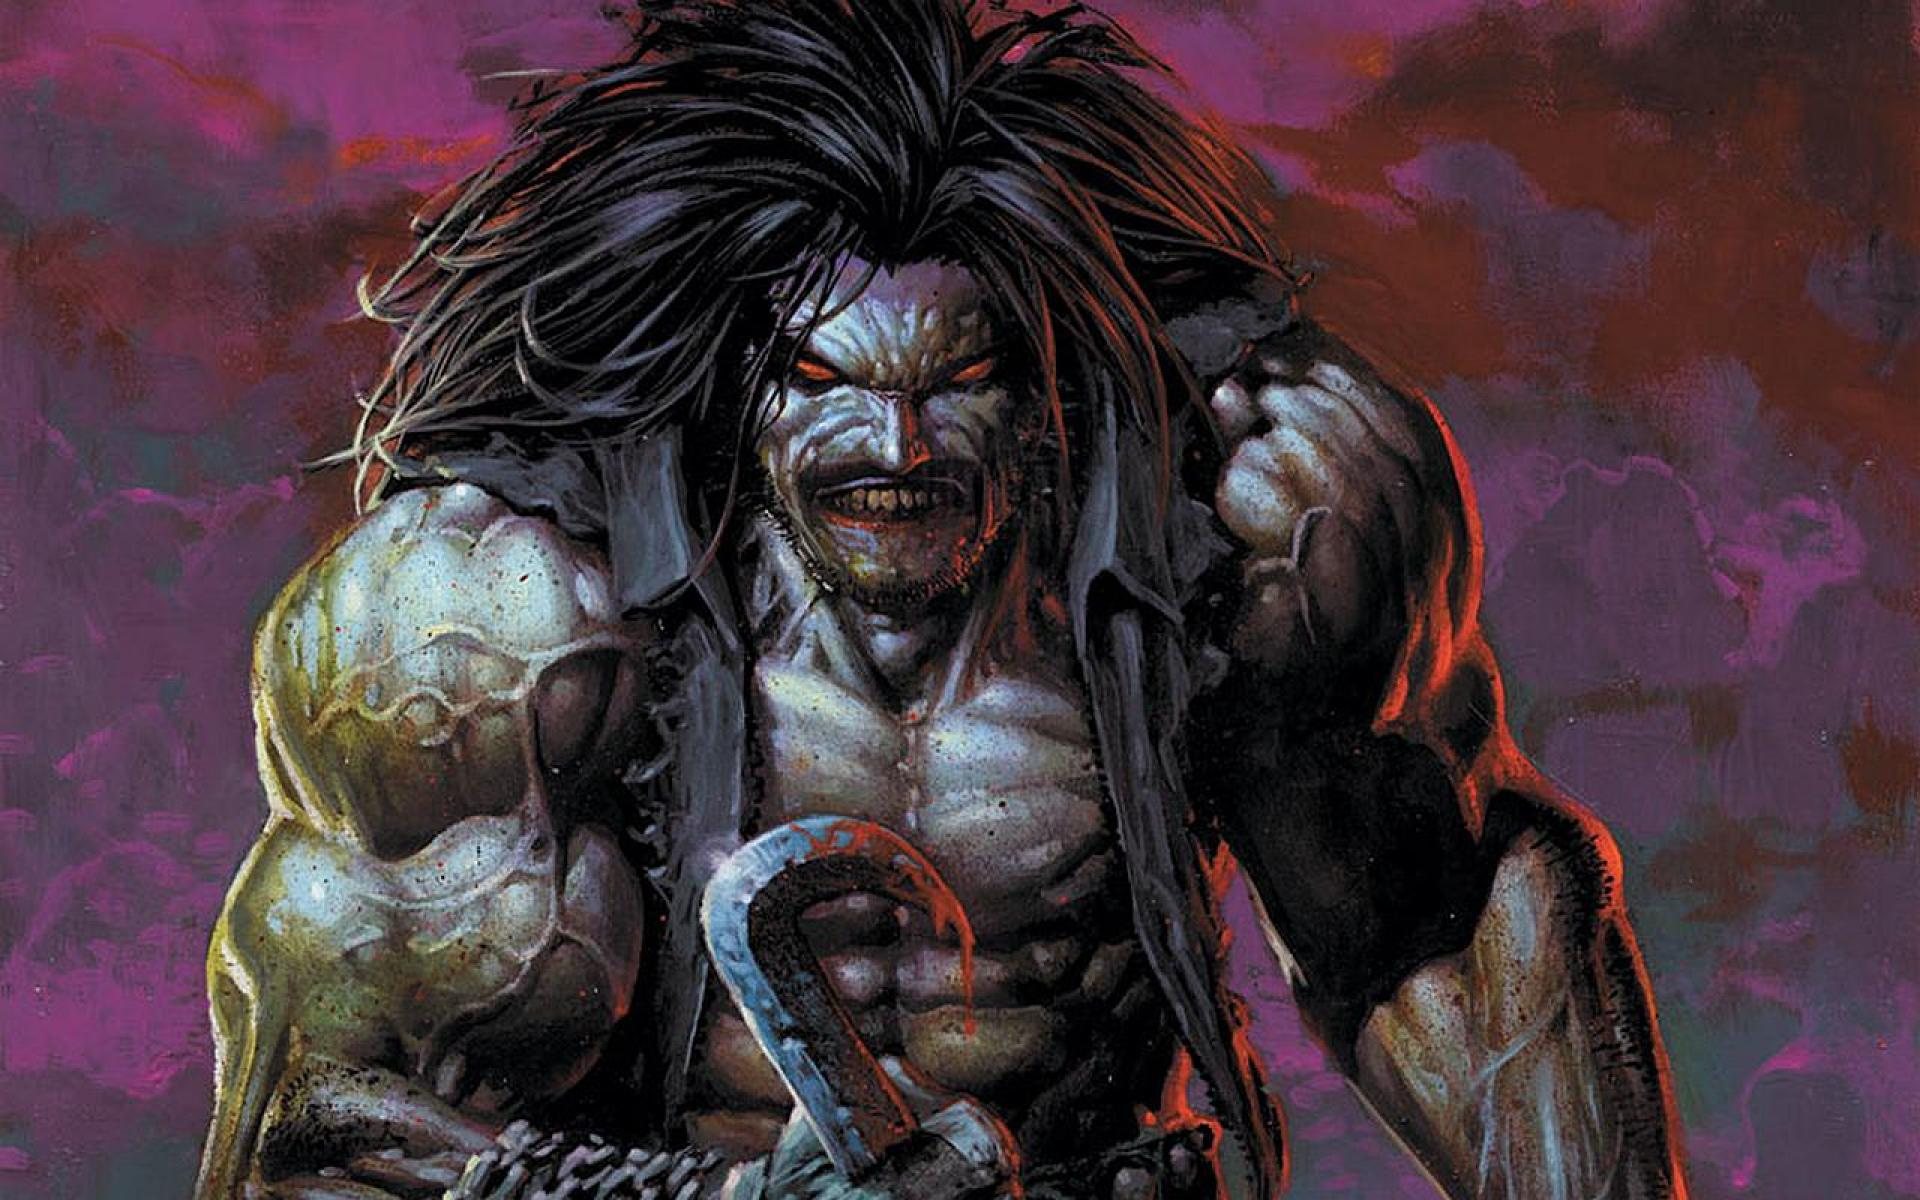 Lobo dc comics   123524   High Quality and Resolution Wallpapers on 1920x1200